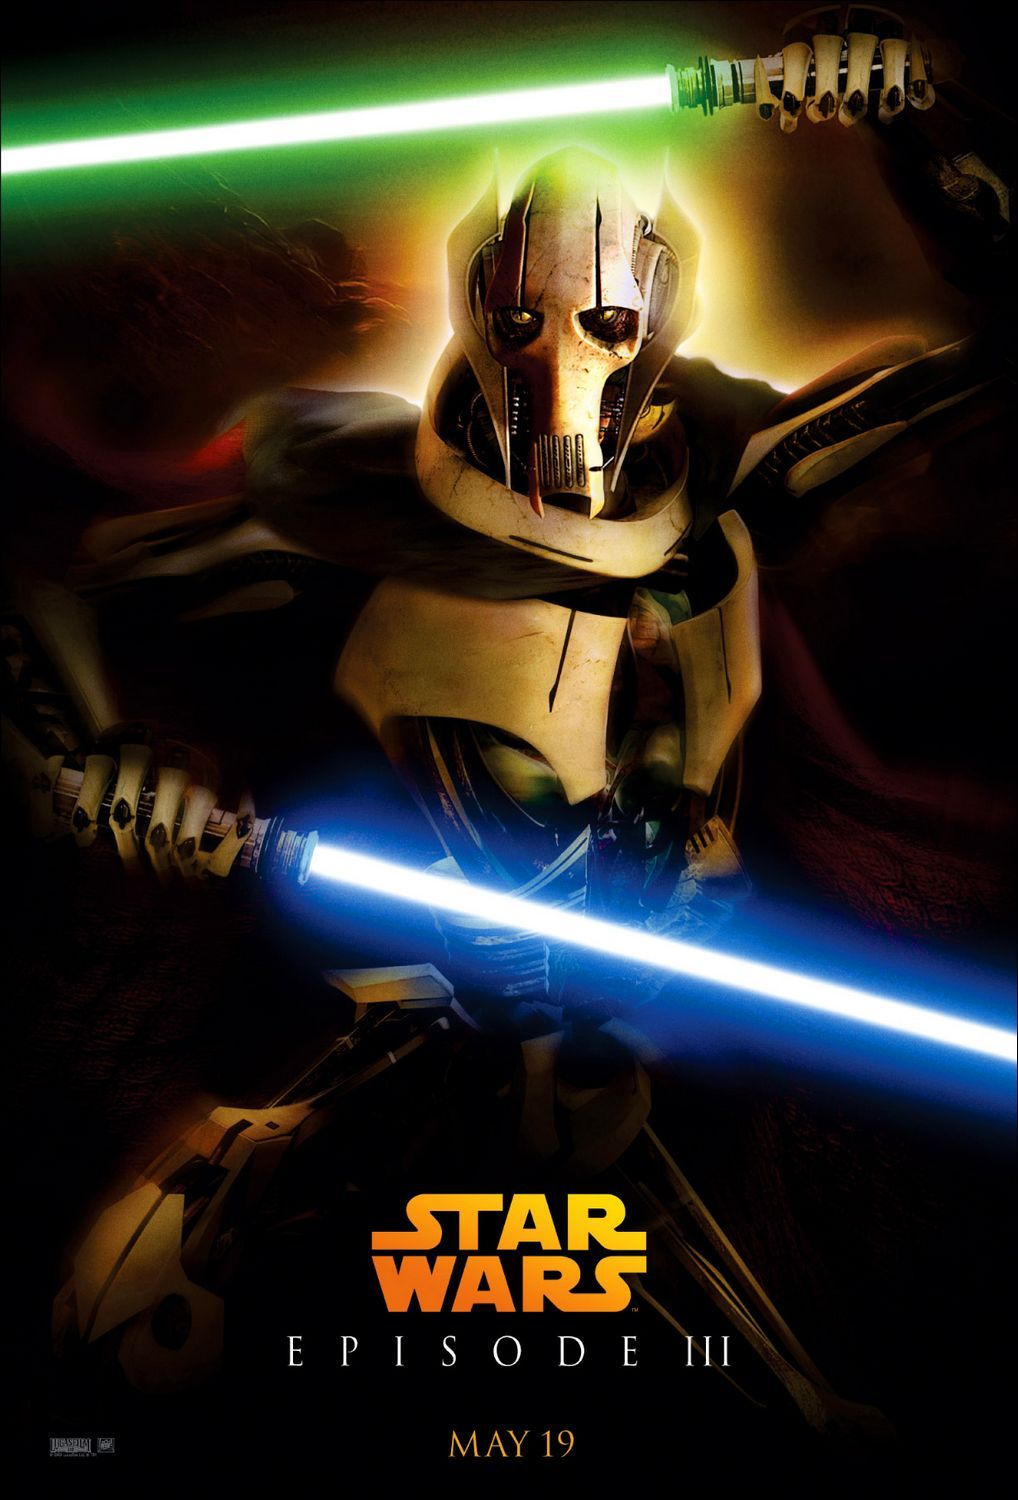 Star Wars Episode 3 Revenge Of The Sith Poster 8 Star Wars Poster Star Wars Stickers Star Wars Pictures